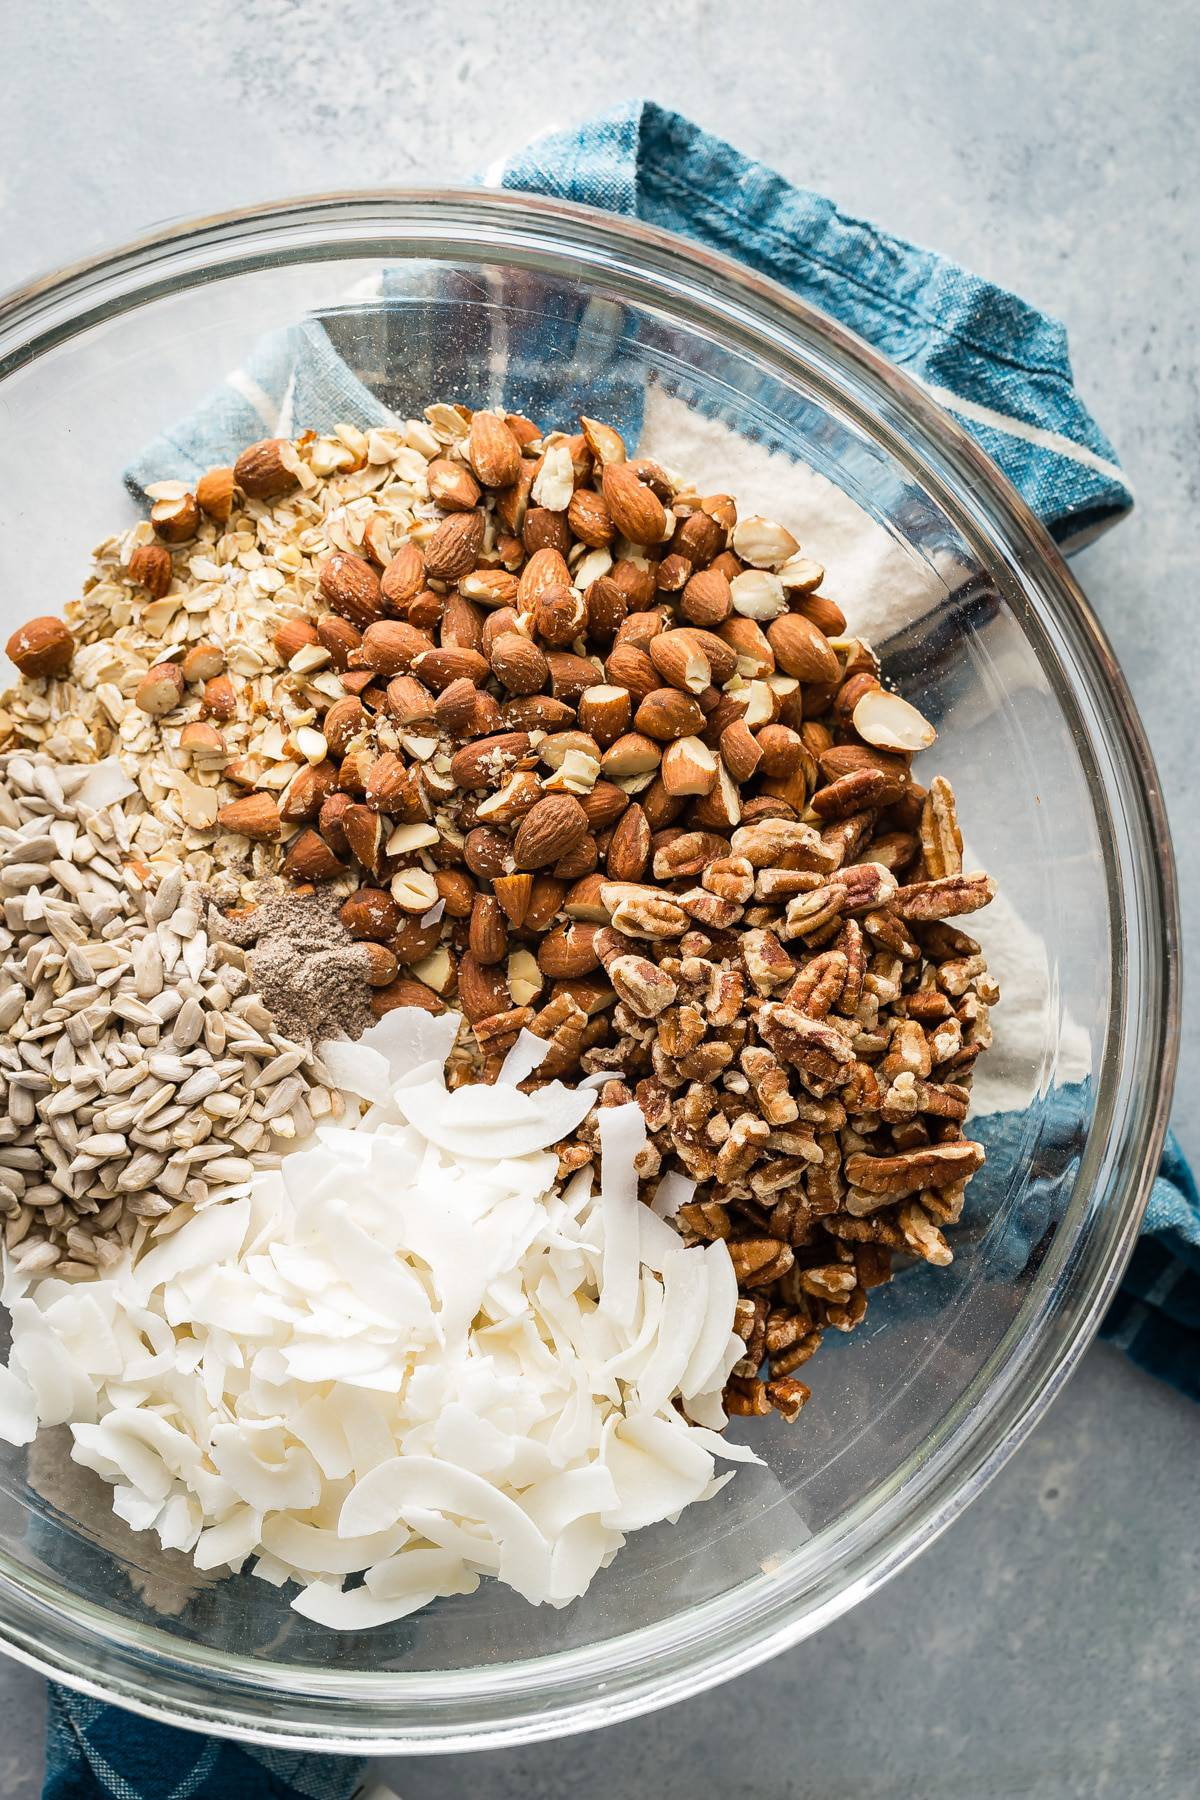 Ingredients for homemade blueberry granola